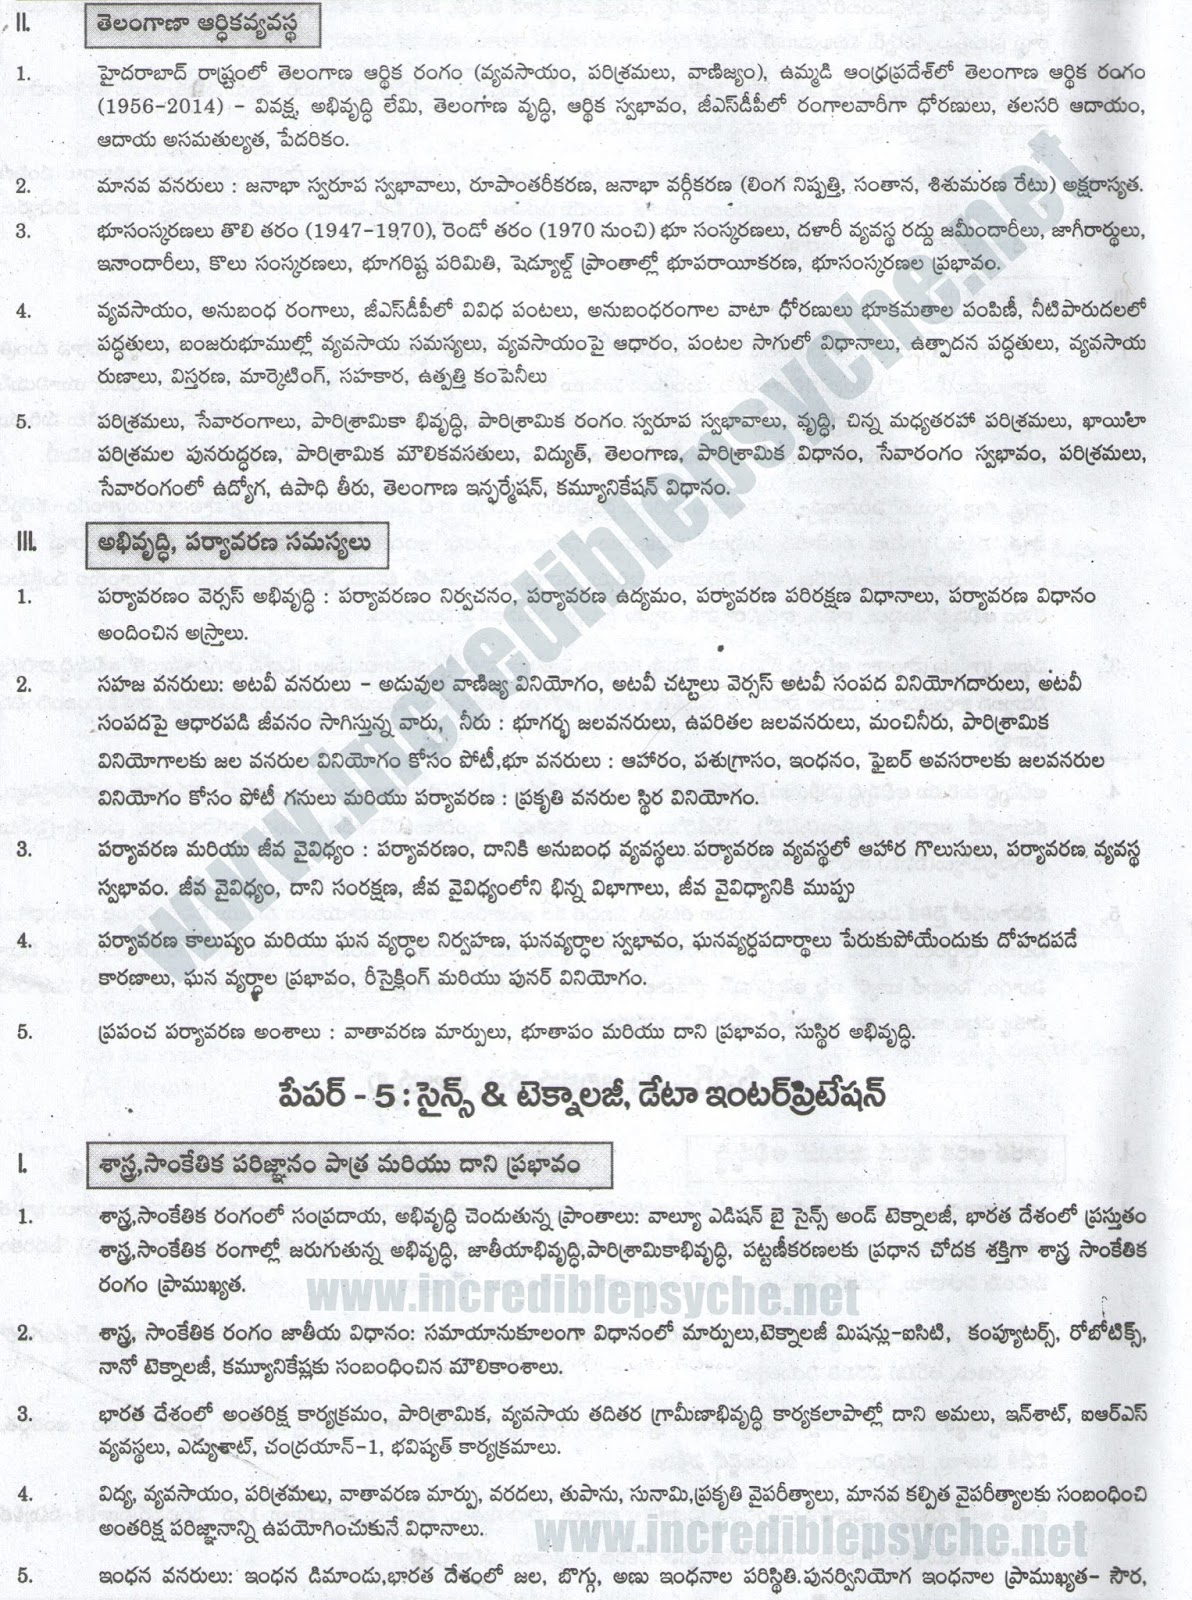 telangana tspsc group 1 exam syllabus in telugu with scheme of exam pattern detailed pattern 5